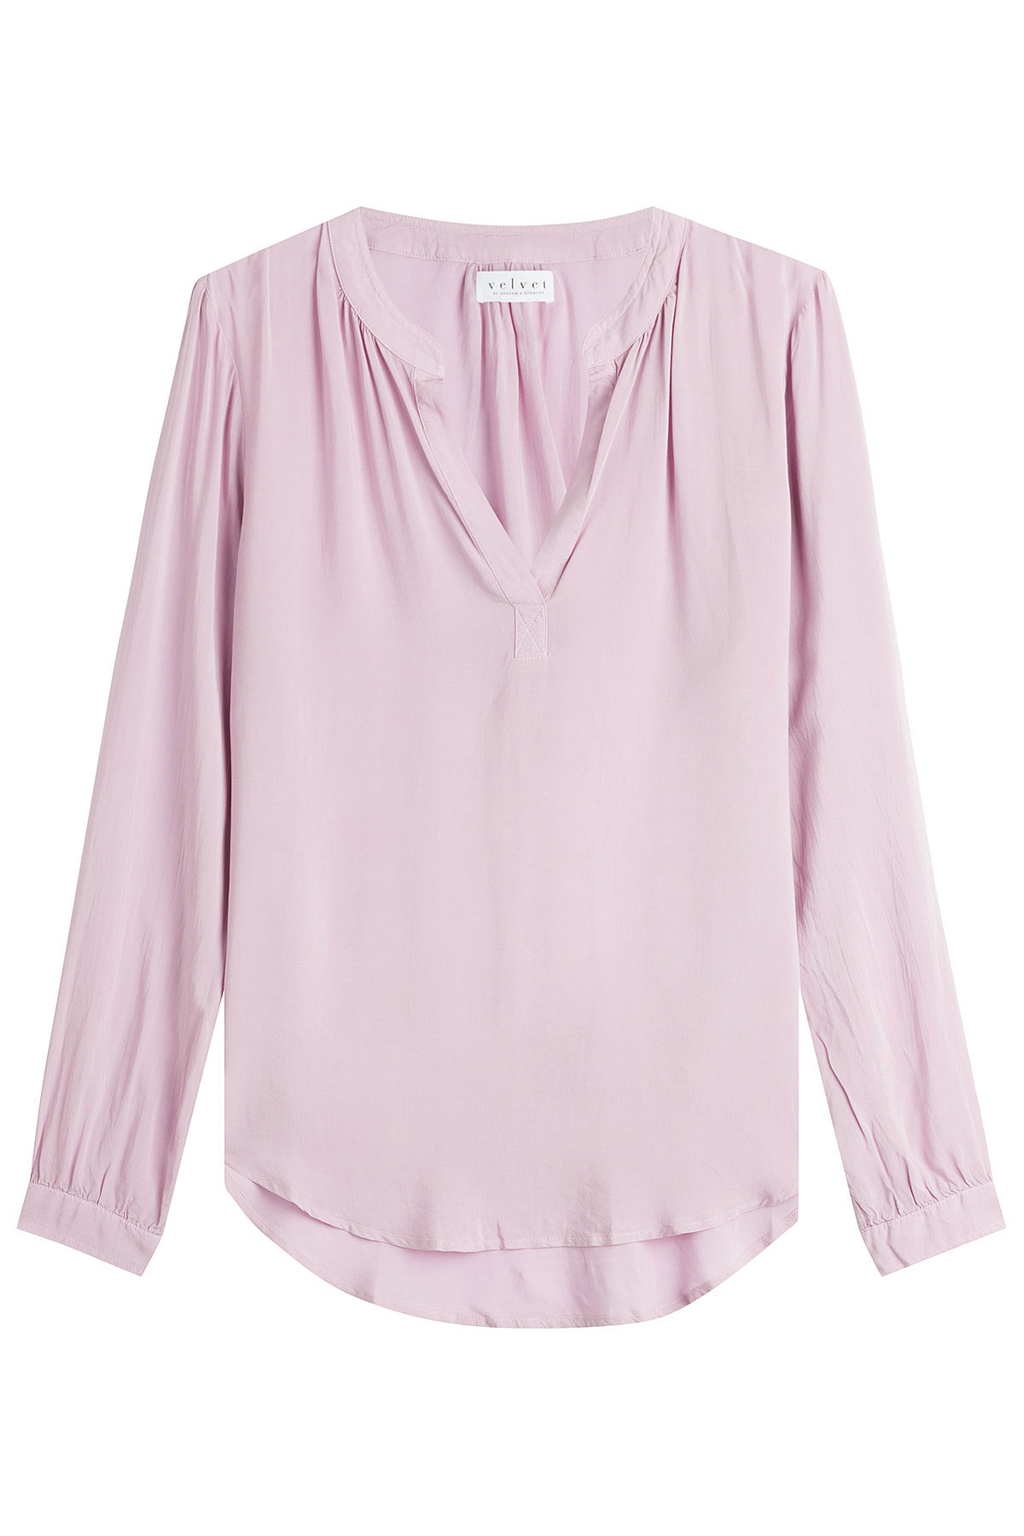 Fluid Blouse - pattern: plain; style: blouse; predominant colour: blush; occasions: casual; length: standard; neckline: collarstand & mandarin with v-neck; fibres: viscose/rayon - 100%; fit: body skimming; sleeve length: long sleeve; sleeve style: standard; pattern type: fabric; texture group: jersey - stretchy/drapey; wardrobe: basic; season: a/w 2016